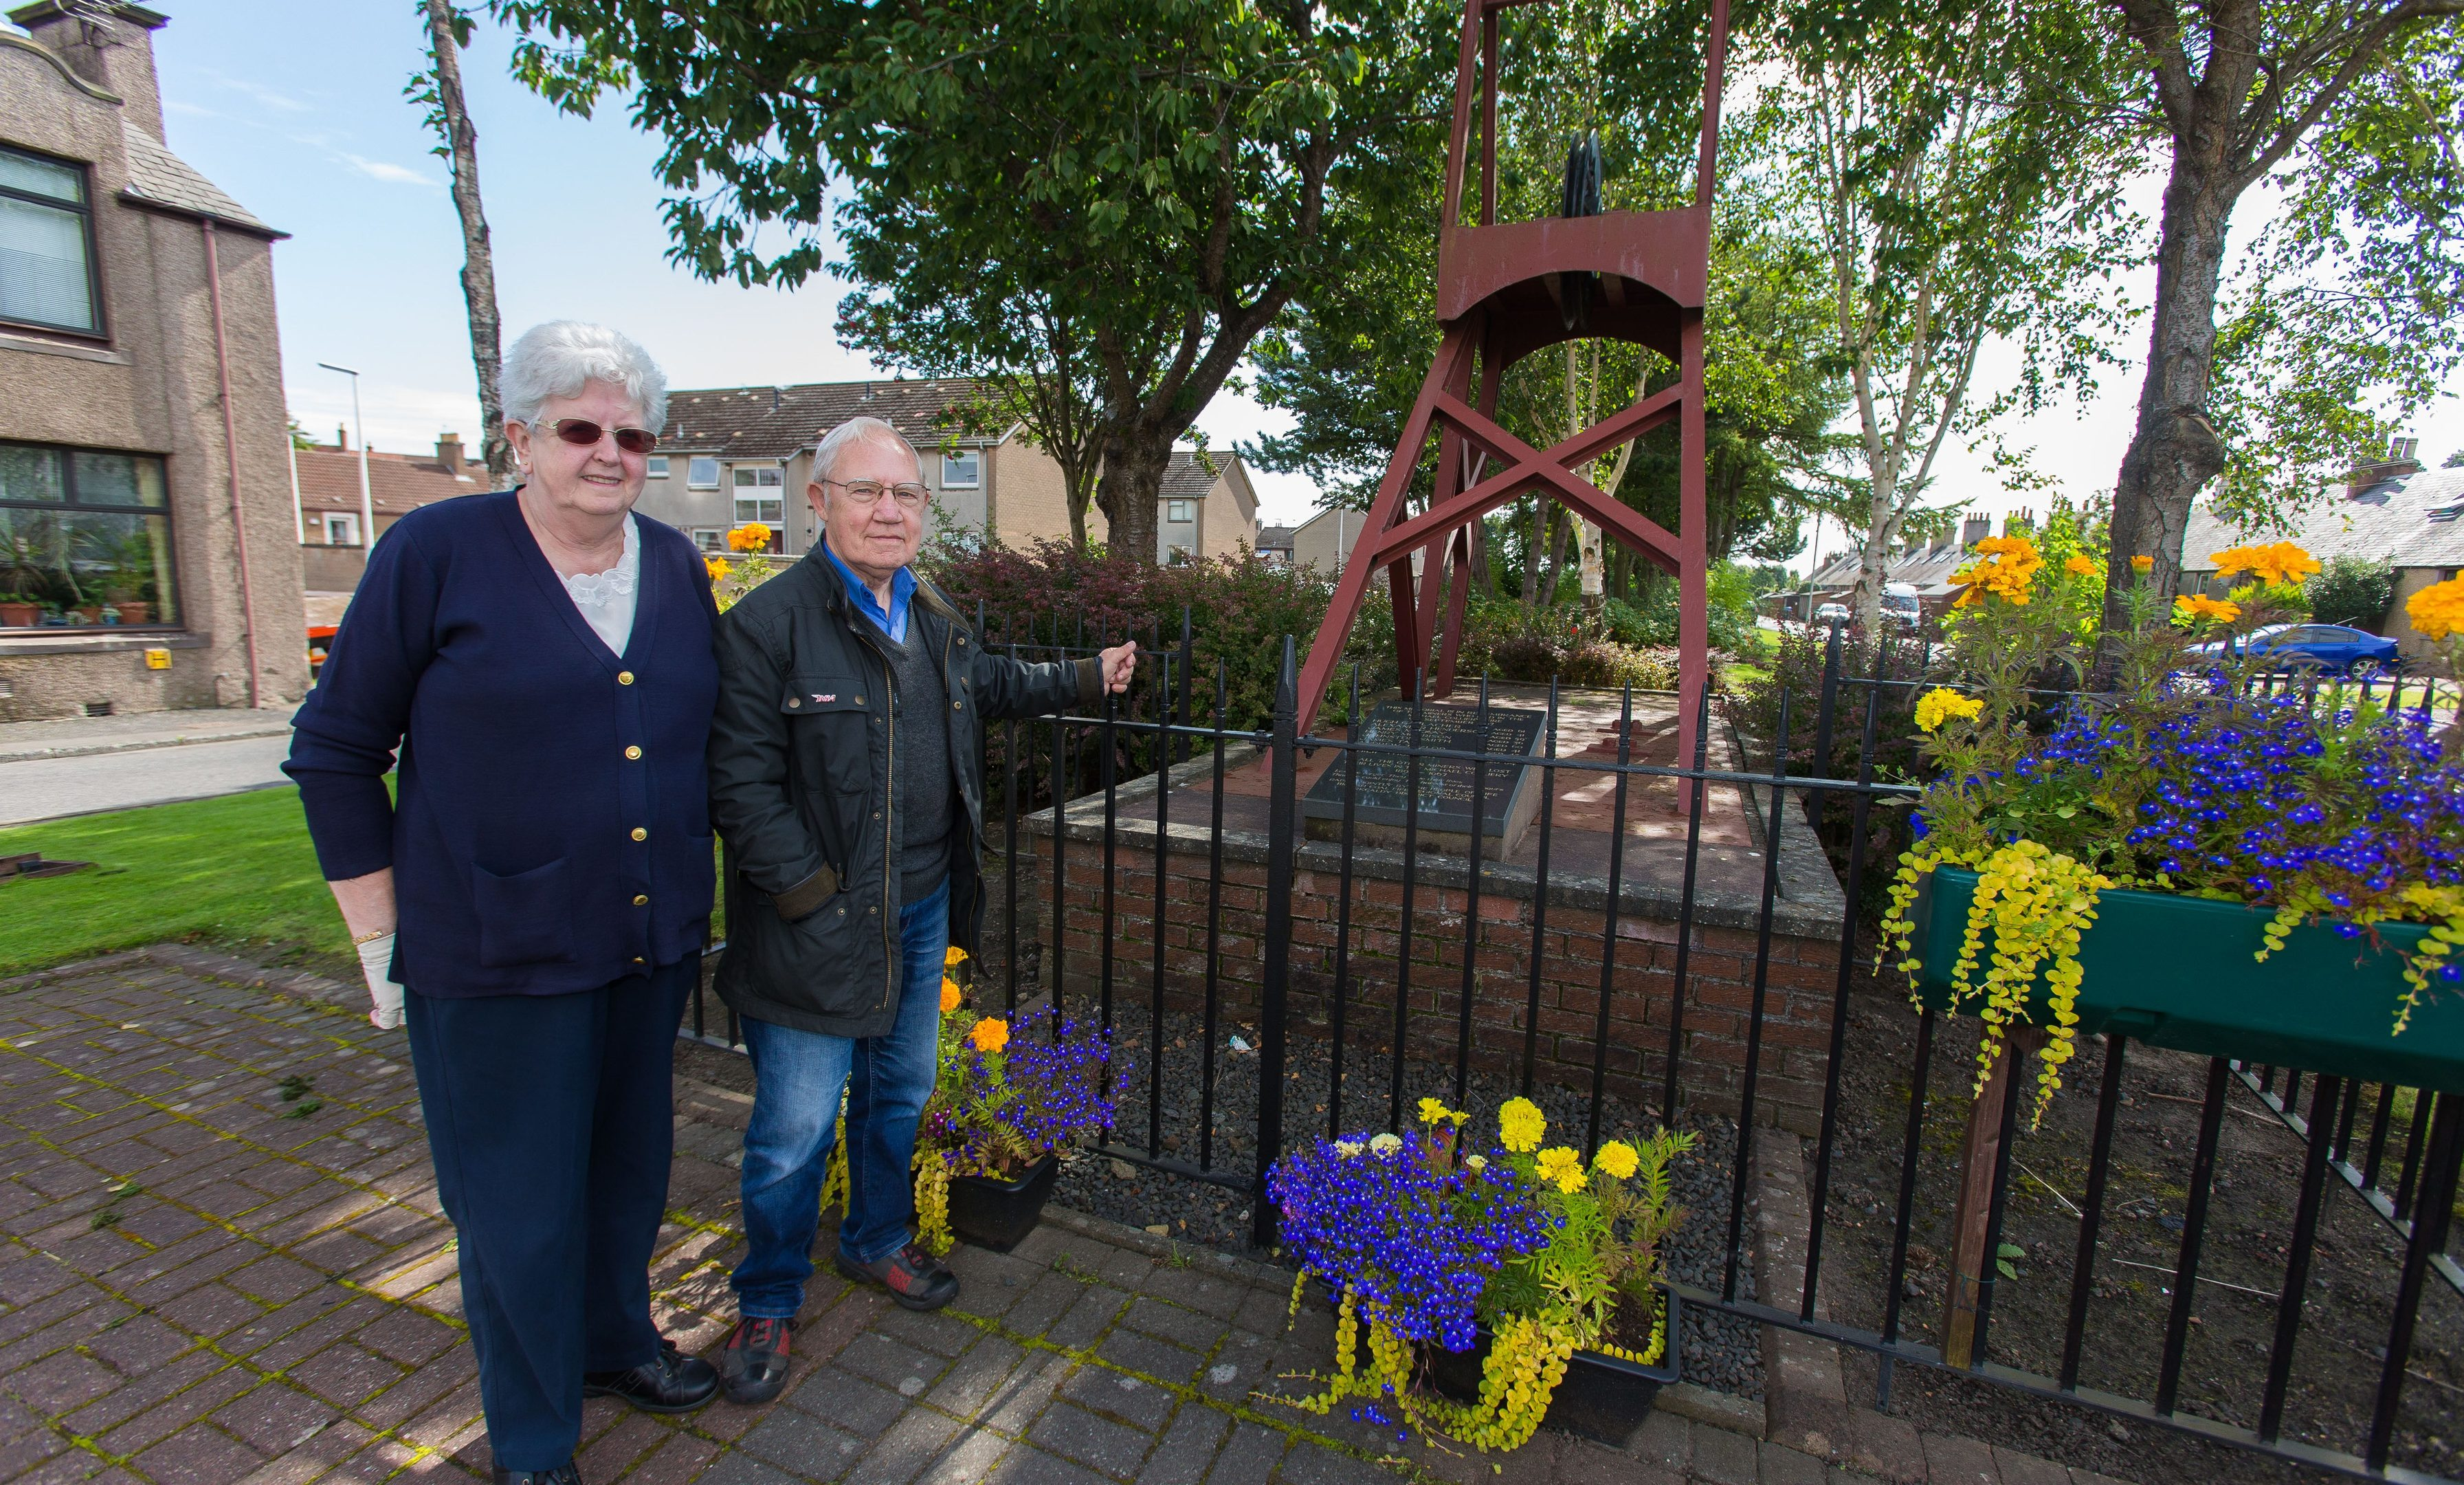 Elizabeth McGuire and Sandy Turner from Fife Mining Preservation Society at the Michael Colliery Memorial before the vandalism